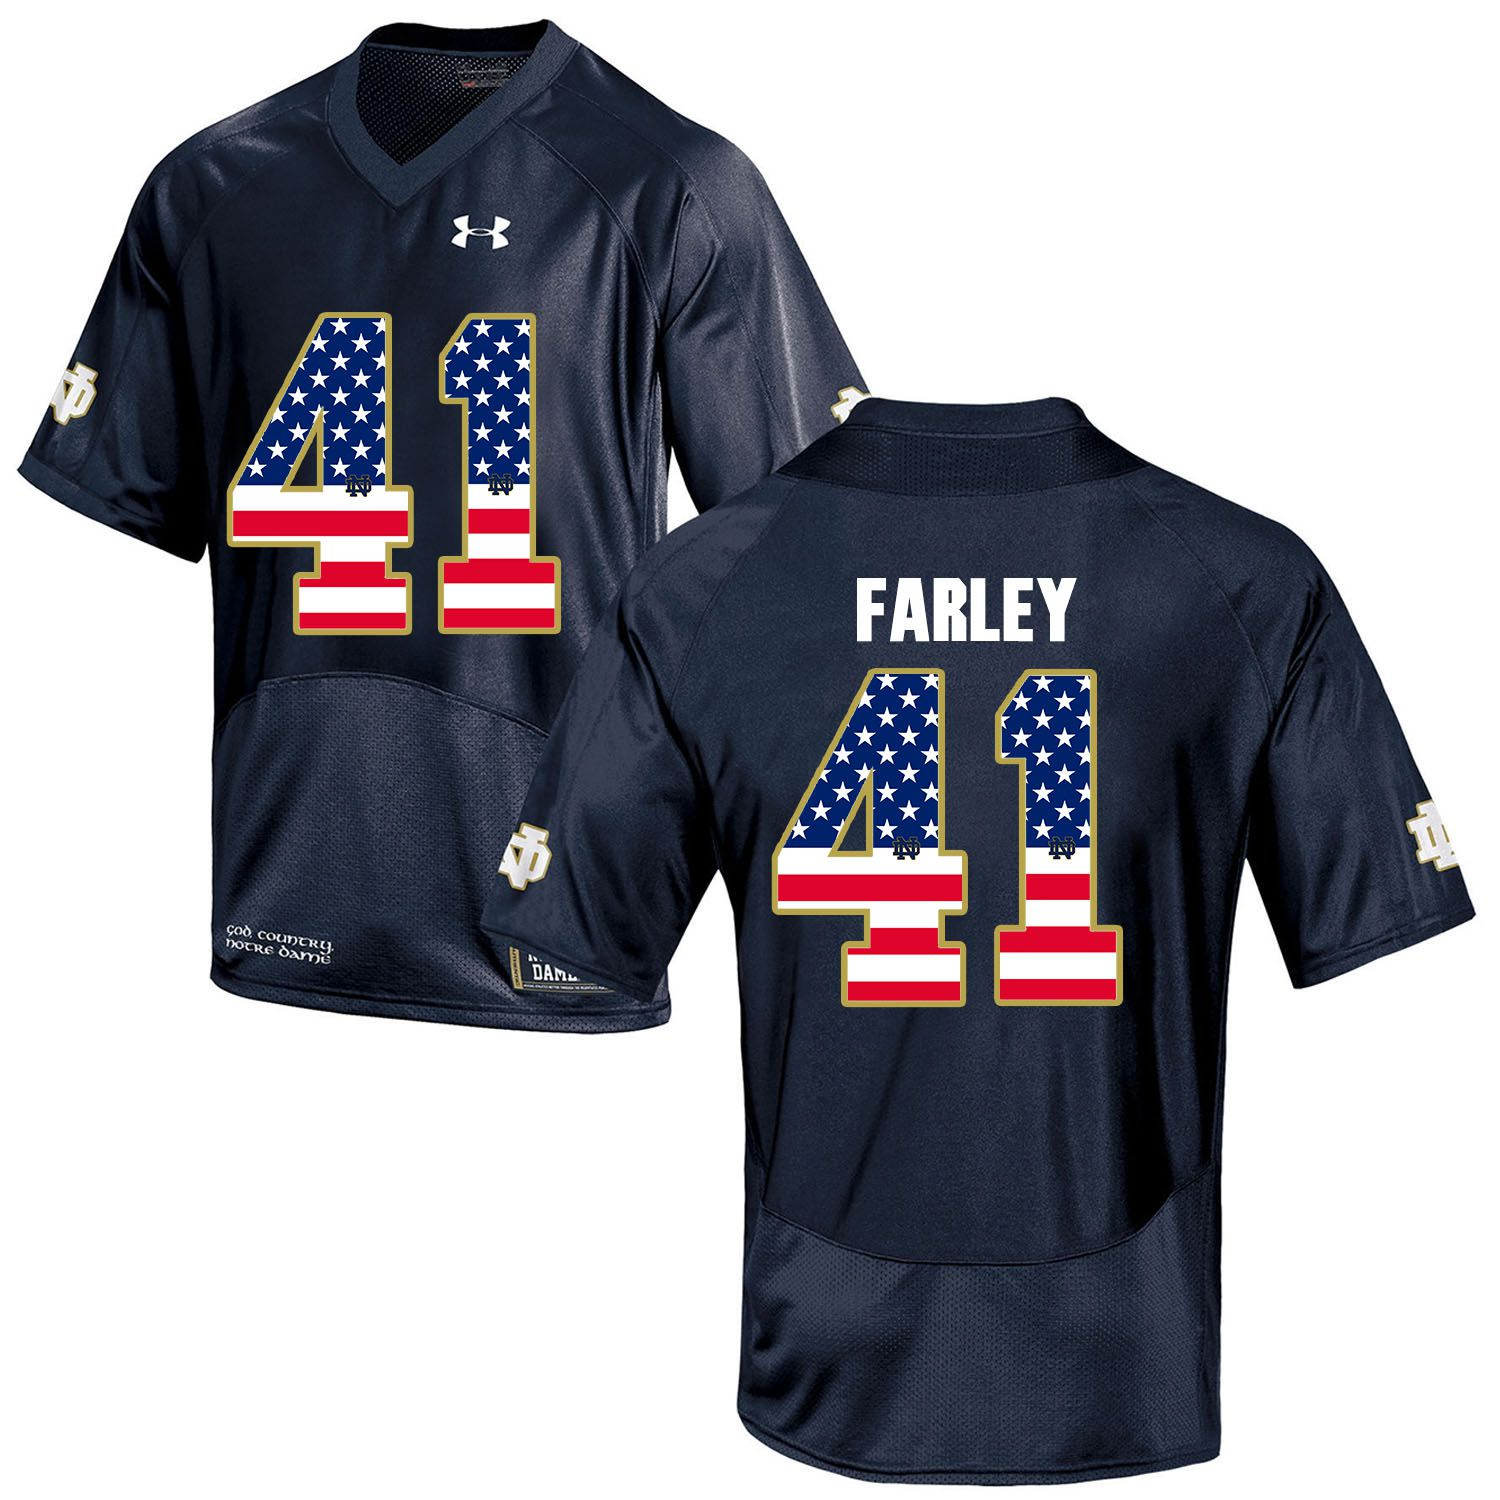 Men Norte Dame Fighting Irish 41 Farley Navy Blue Flag Customized NCAA Jerseys